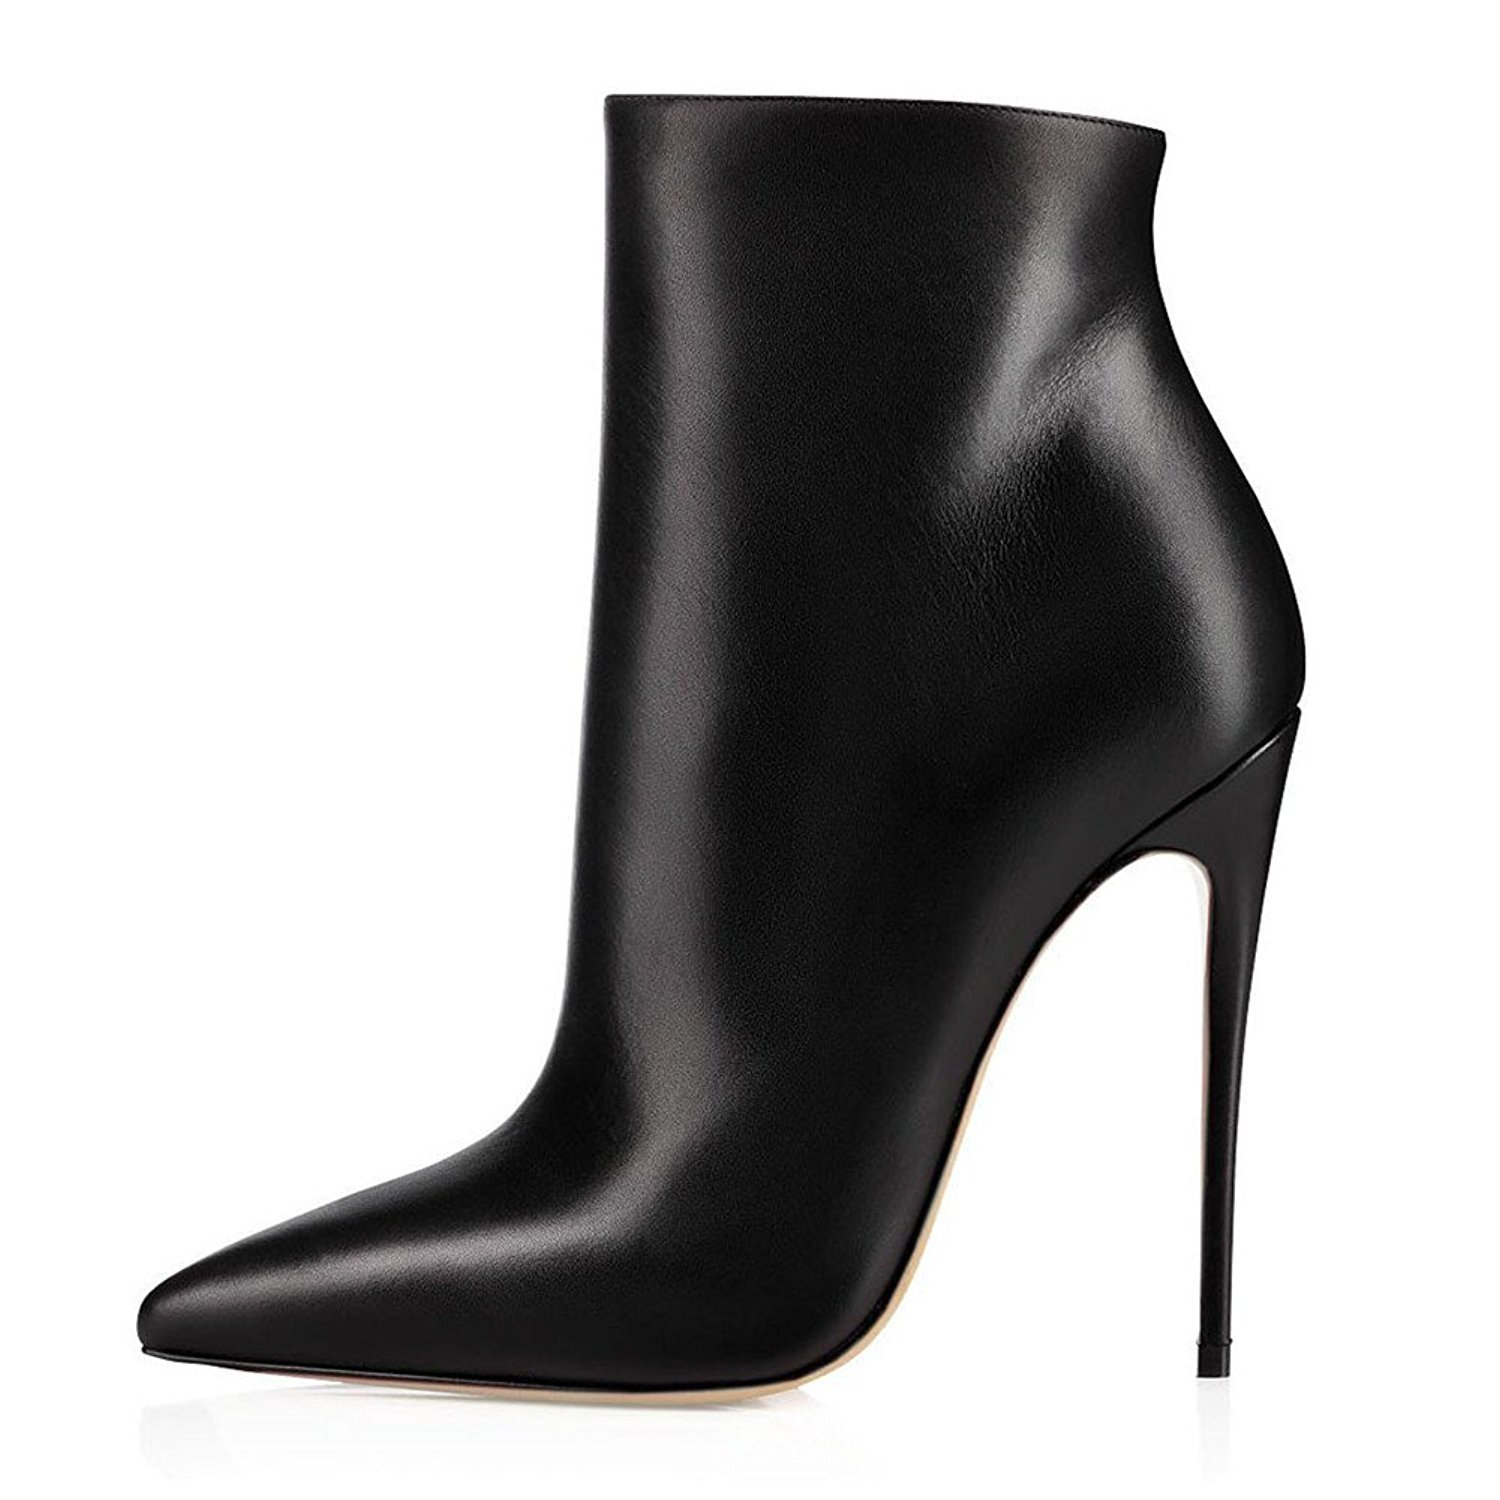 c1779e9013112 Sammitop Women s Pointed Toe Side Zip Ankle Boots Stiletto High Heel Winter  Short Boots